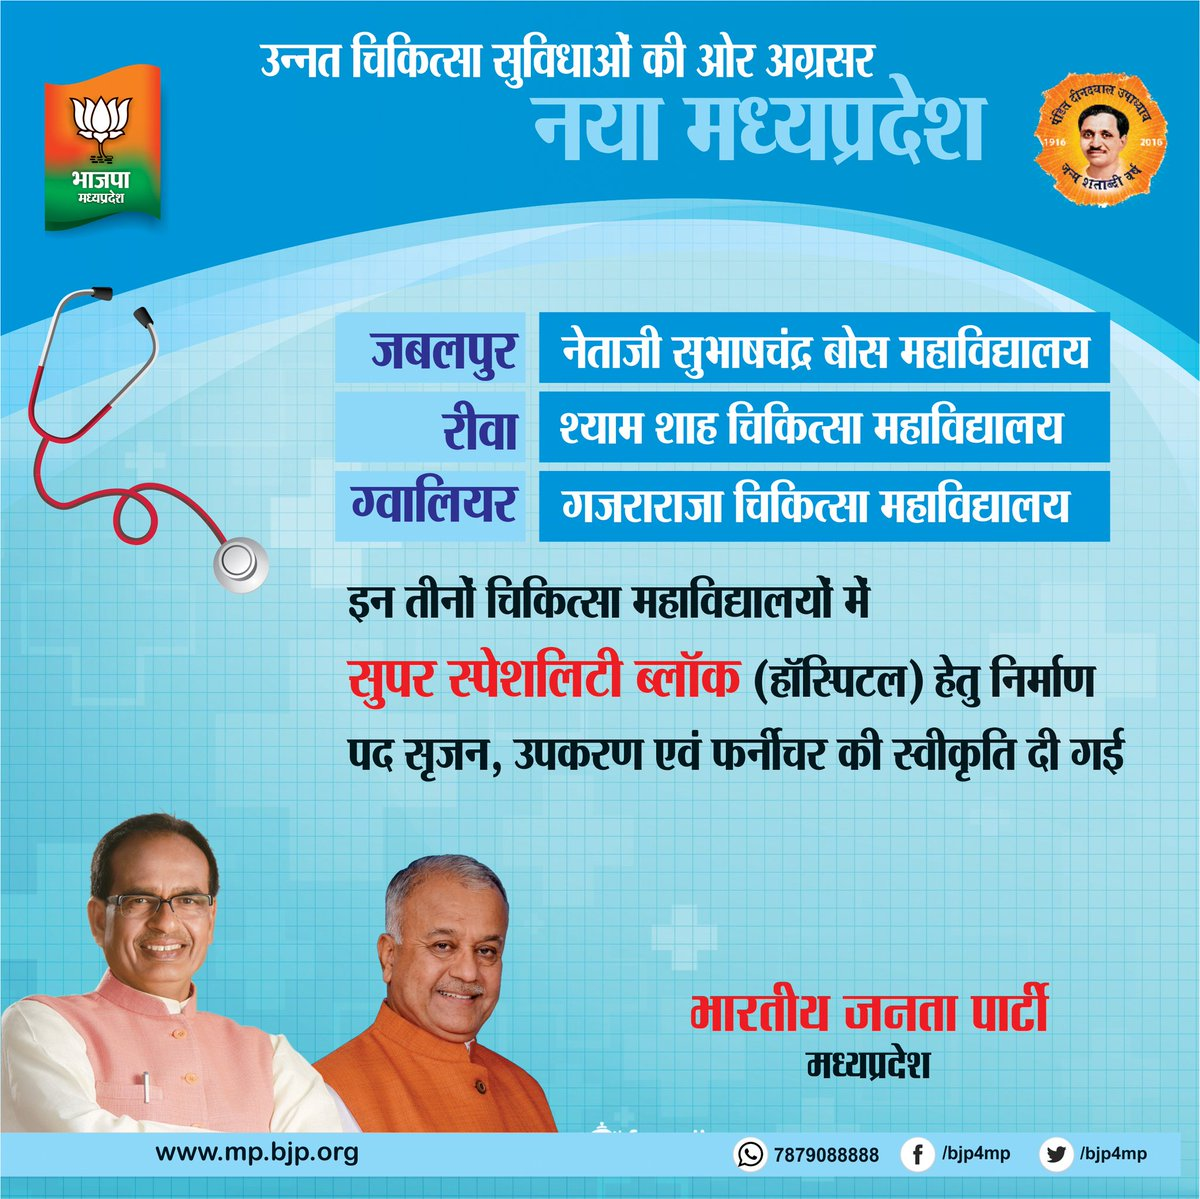 #MP best medical facilities.  Superspecility govt hospitals with world class specialists. @ChouhanShivraj govt committed for its citizens.<br>http://pic.twitter.com/VaqiIrOWRG